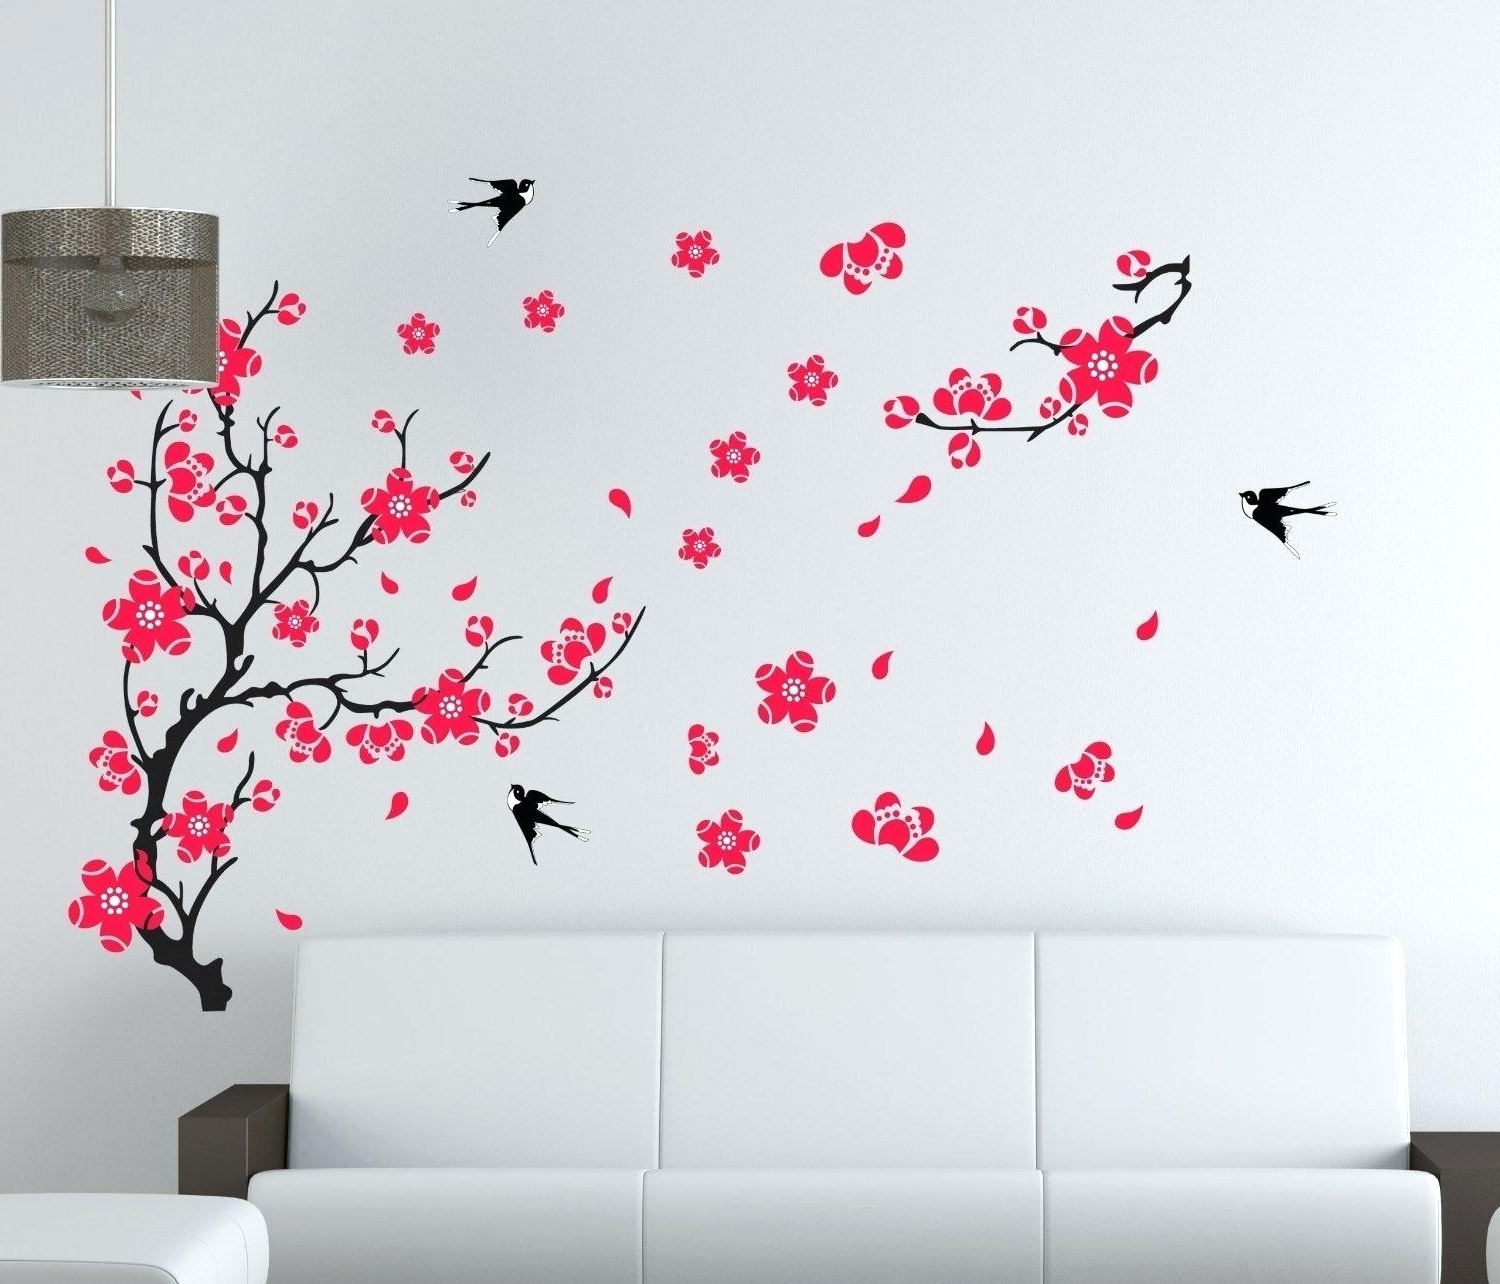 Widely Used Cherry Blossom Vinyl Wall Art Inside Cherry Blossom Vinyl Wall Decal Large Plum Blossom Flower (View 13 of 15)